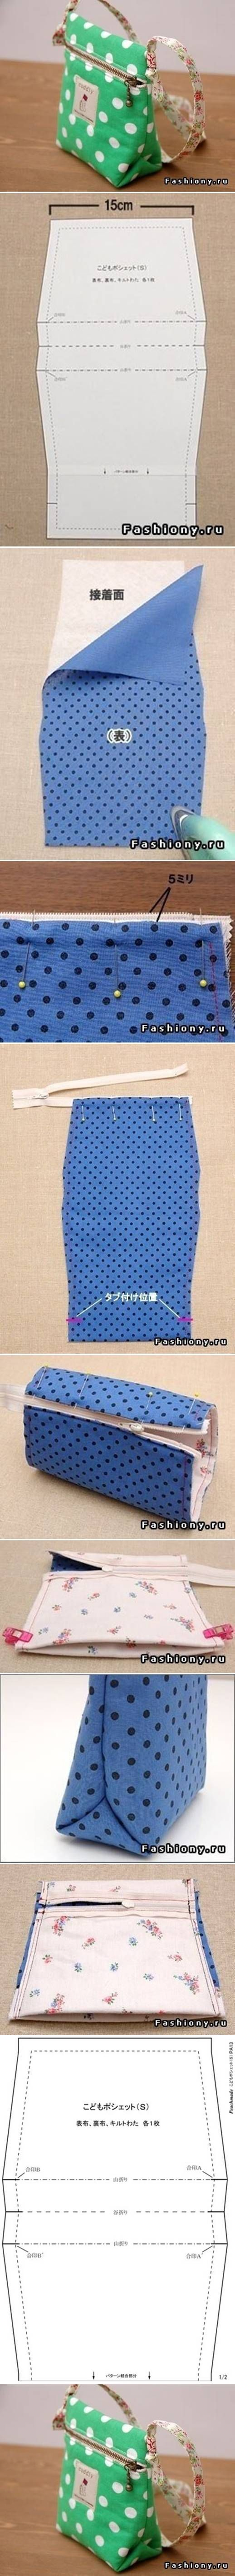 diy~want to try!  Board